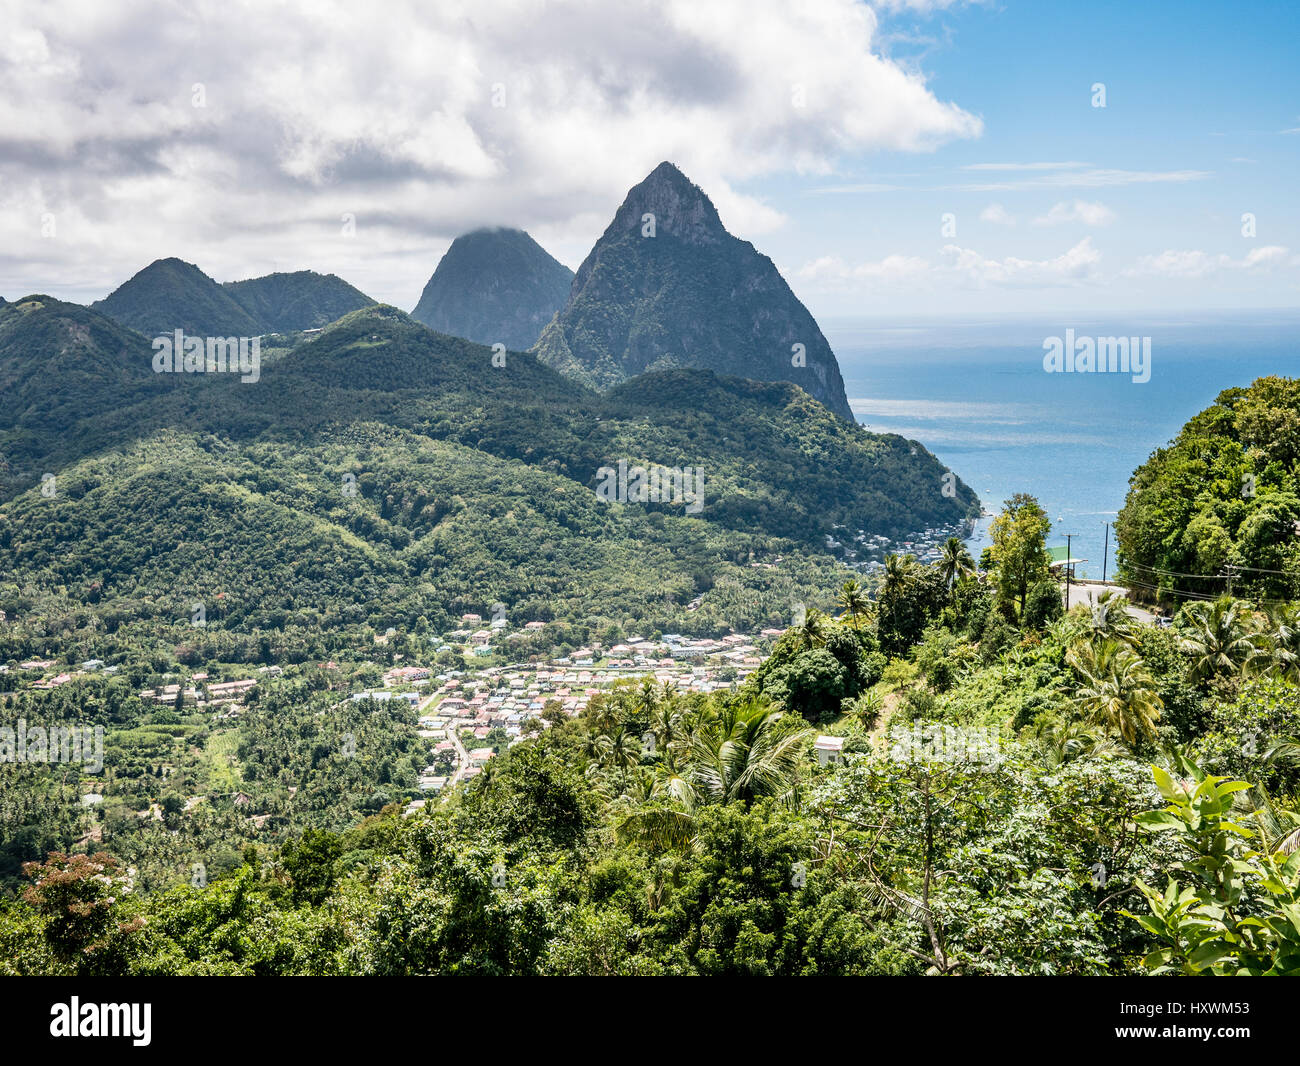 View over Caribbean Island of St. Lucia and Town of Soufrieres to Volcanic Spines the Pitons - Stock Image